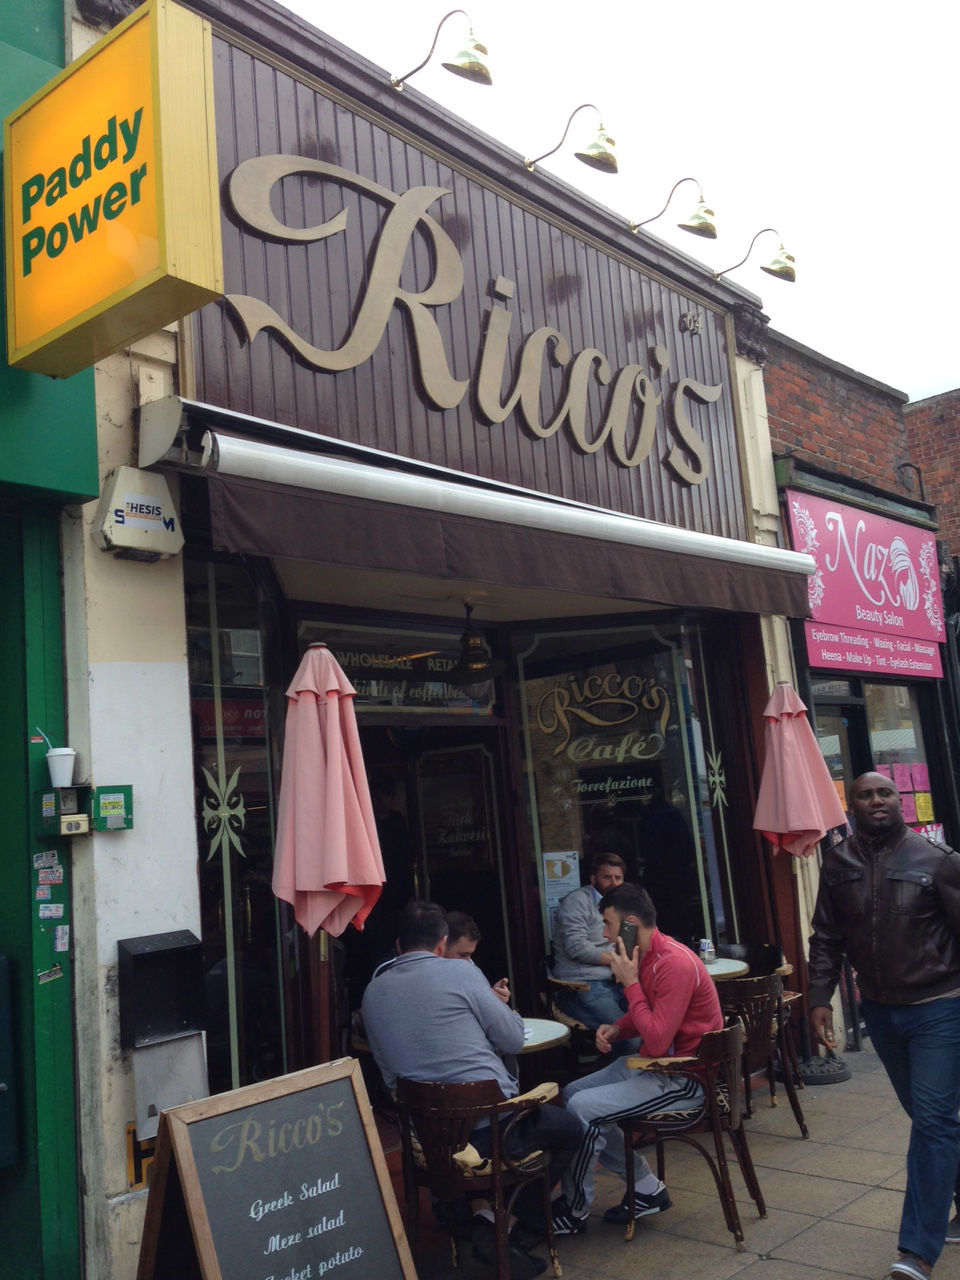 Riccos: the cafe's worth a detour anyway. And there's art upstairs